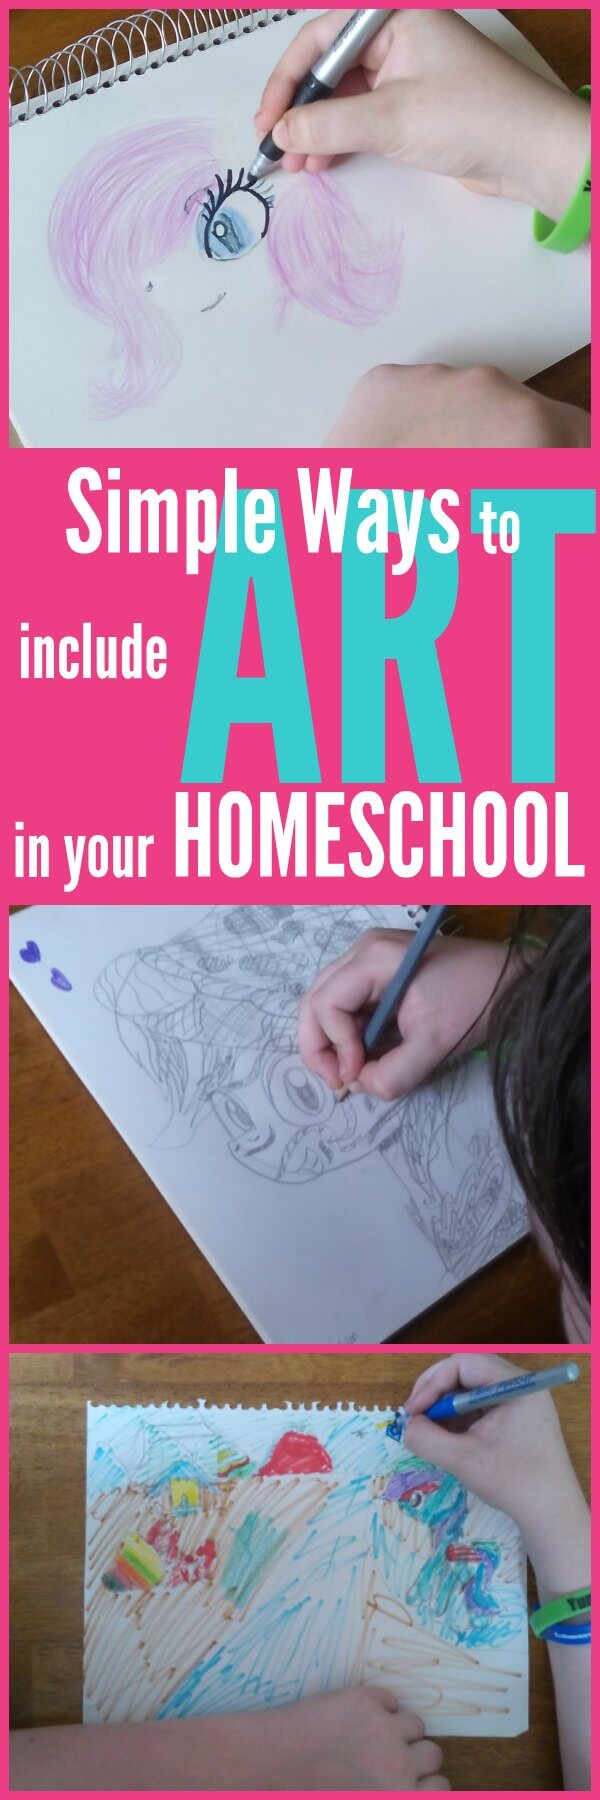 A few simple ways to include art in your homeschool. These tips will help you easily add homeschool art lessons to your homeschool schedule.